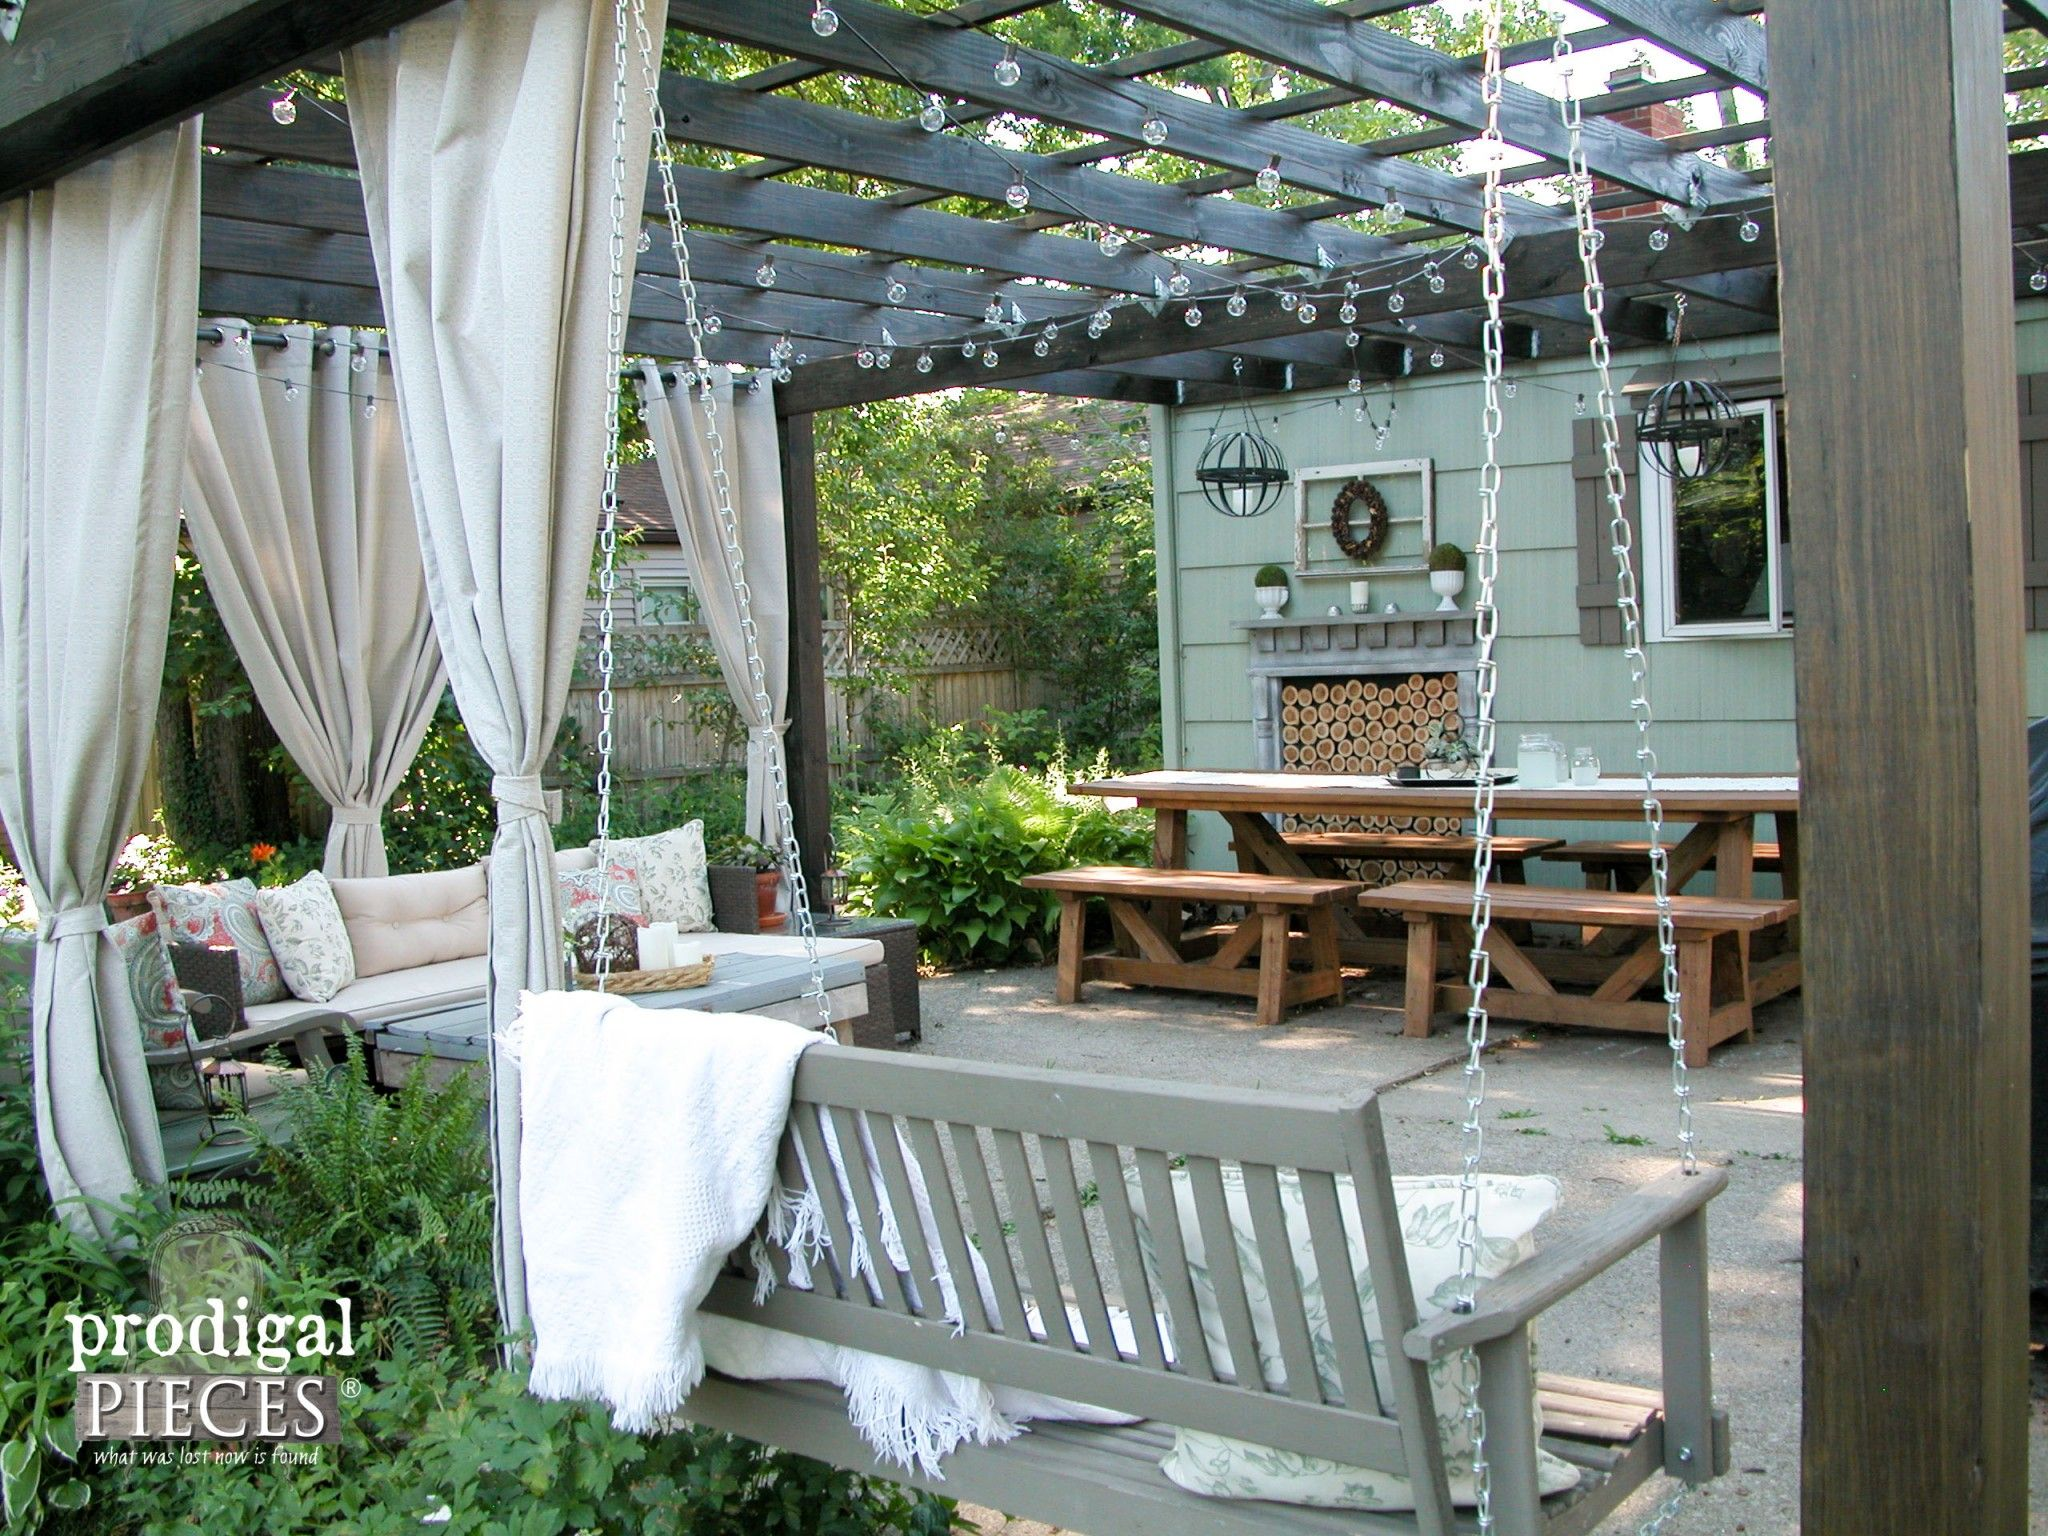 Rustic Patio With DIY Pergola Dining And Entertaining Area By Prodigal Pieces